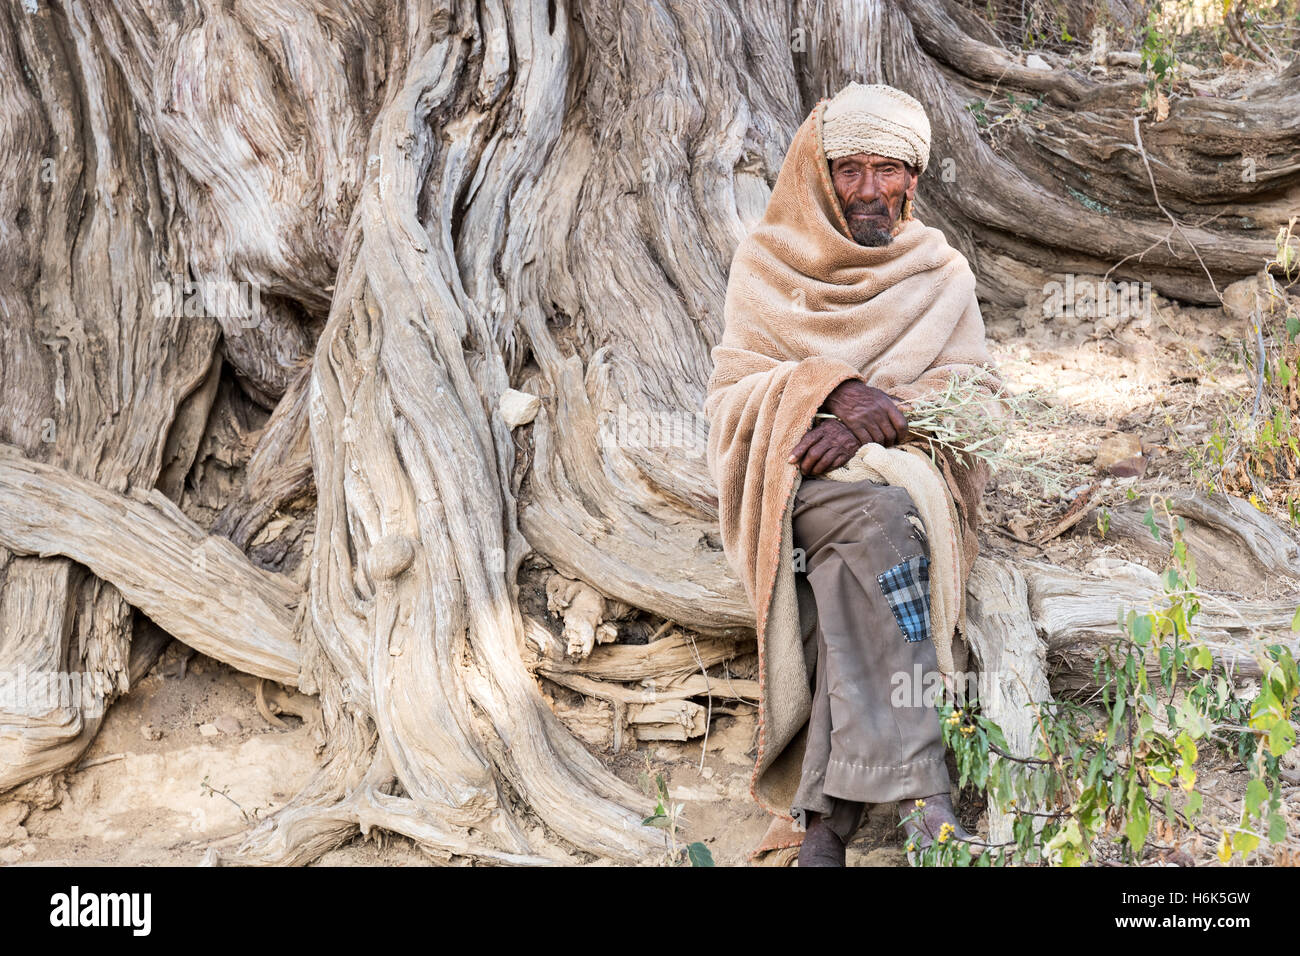 Adigrat, Ethiopia - January 21 , 2016: An old farmer sitting on the roots of a tree in the village outskirts - Stock Image